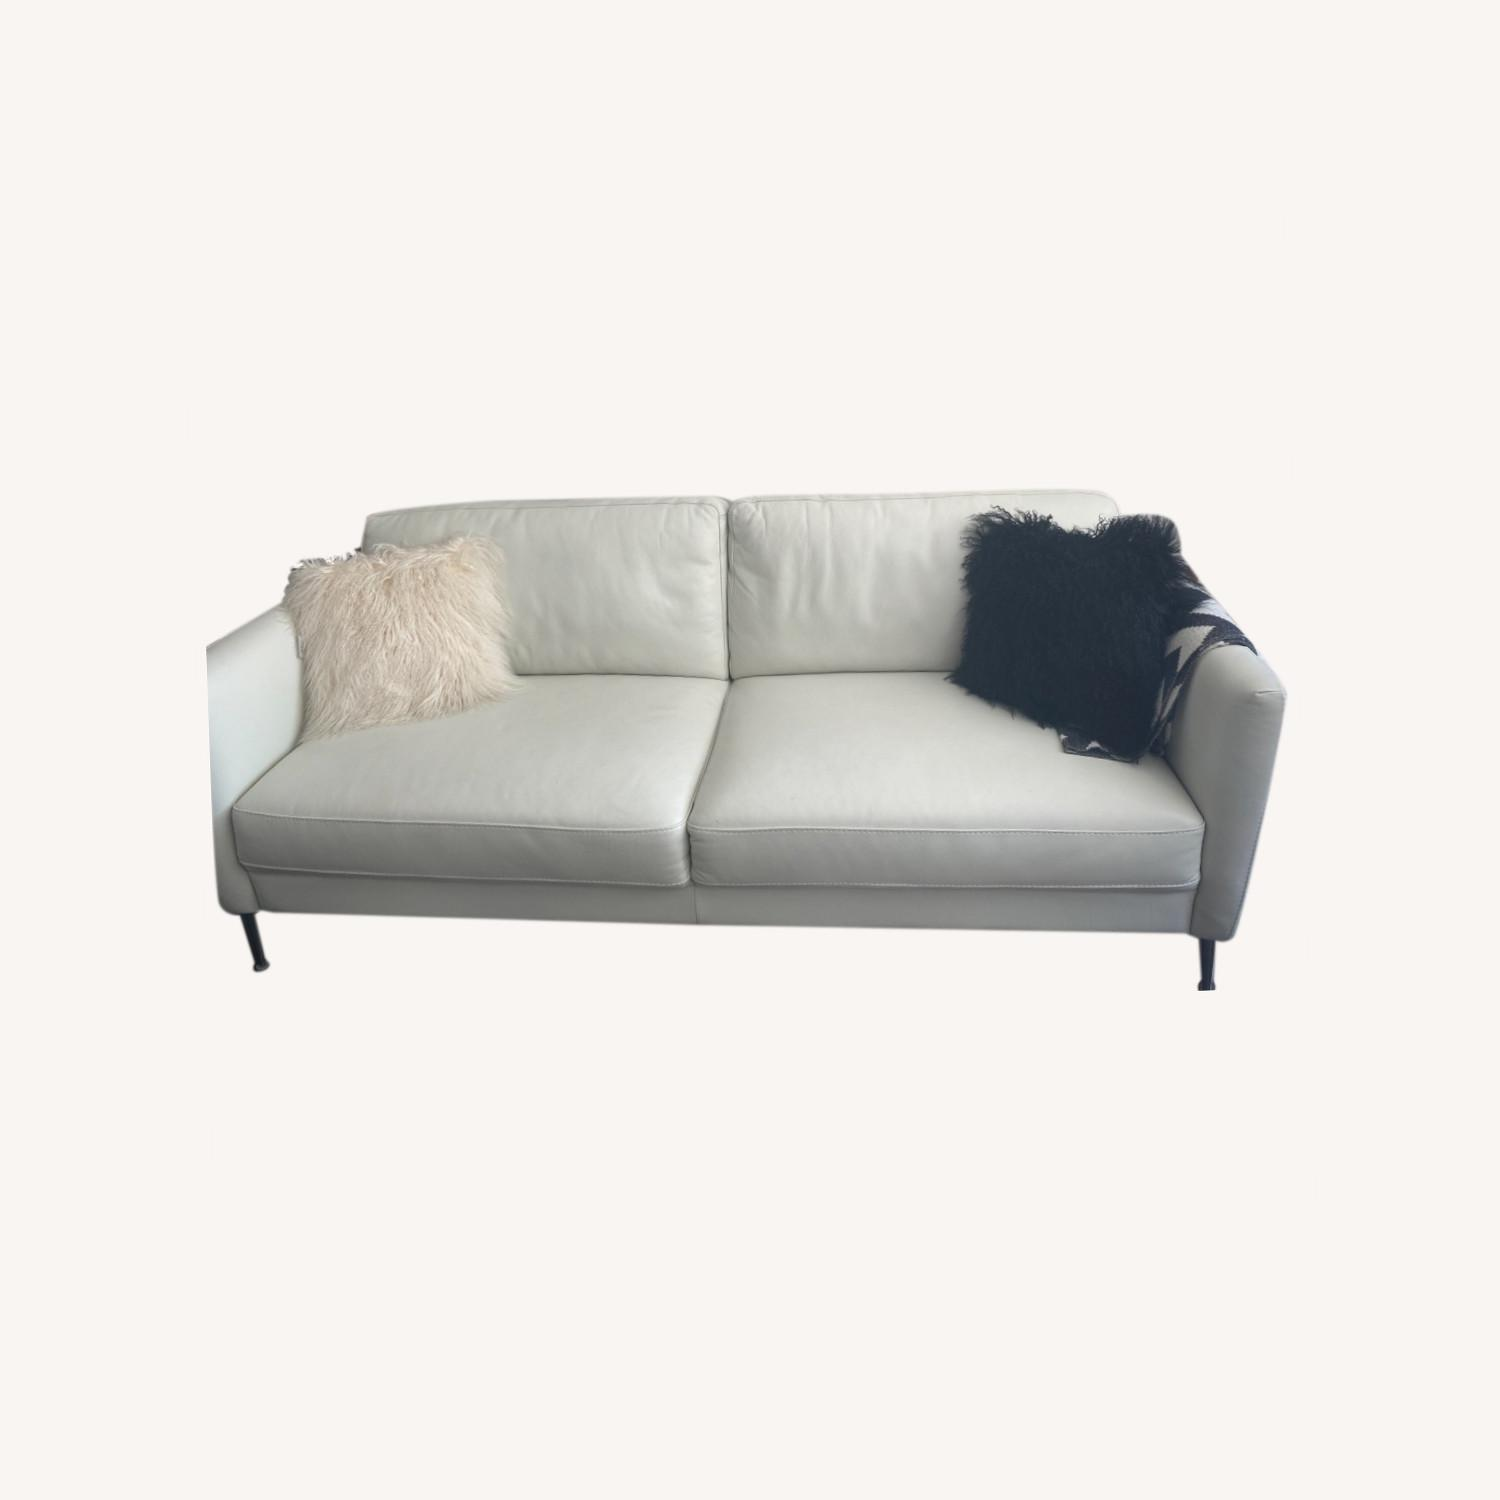 Bloomingdale's White Leather Sofa - image-0